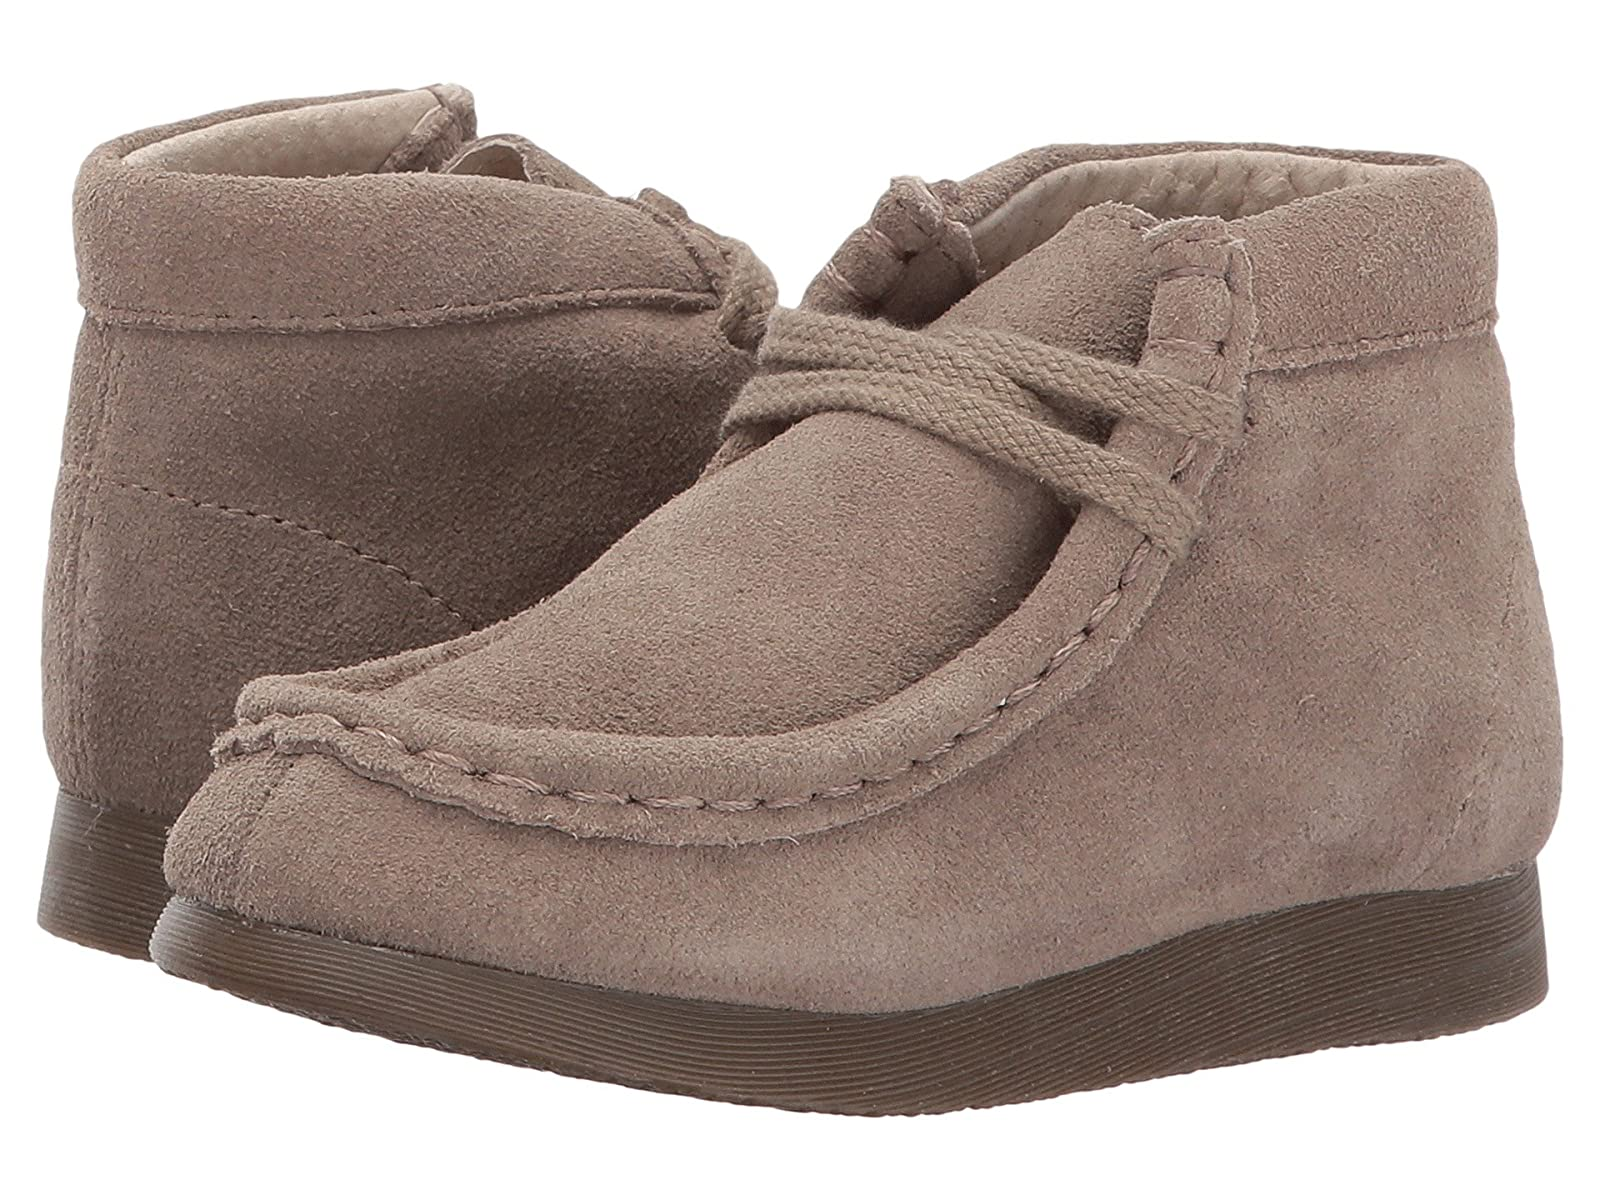 FootMates Wally (Toddler/Little Kid)Affordable and distinctive shoes